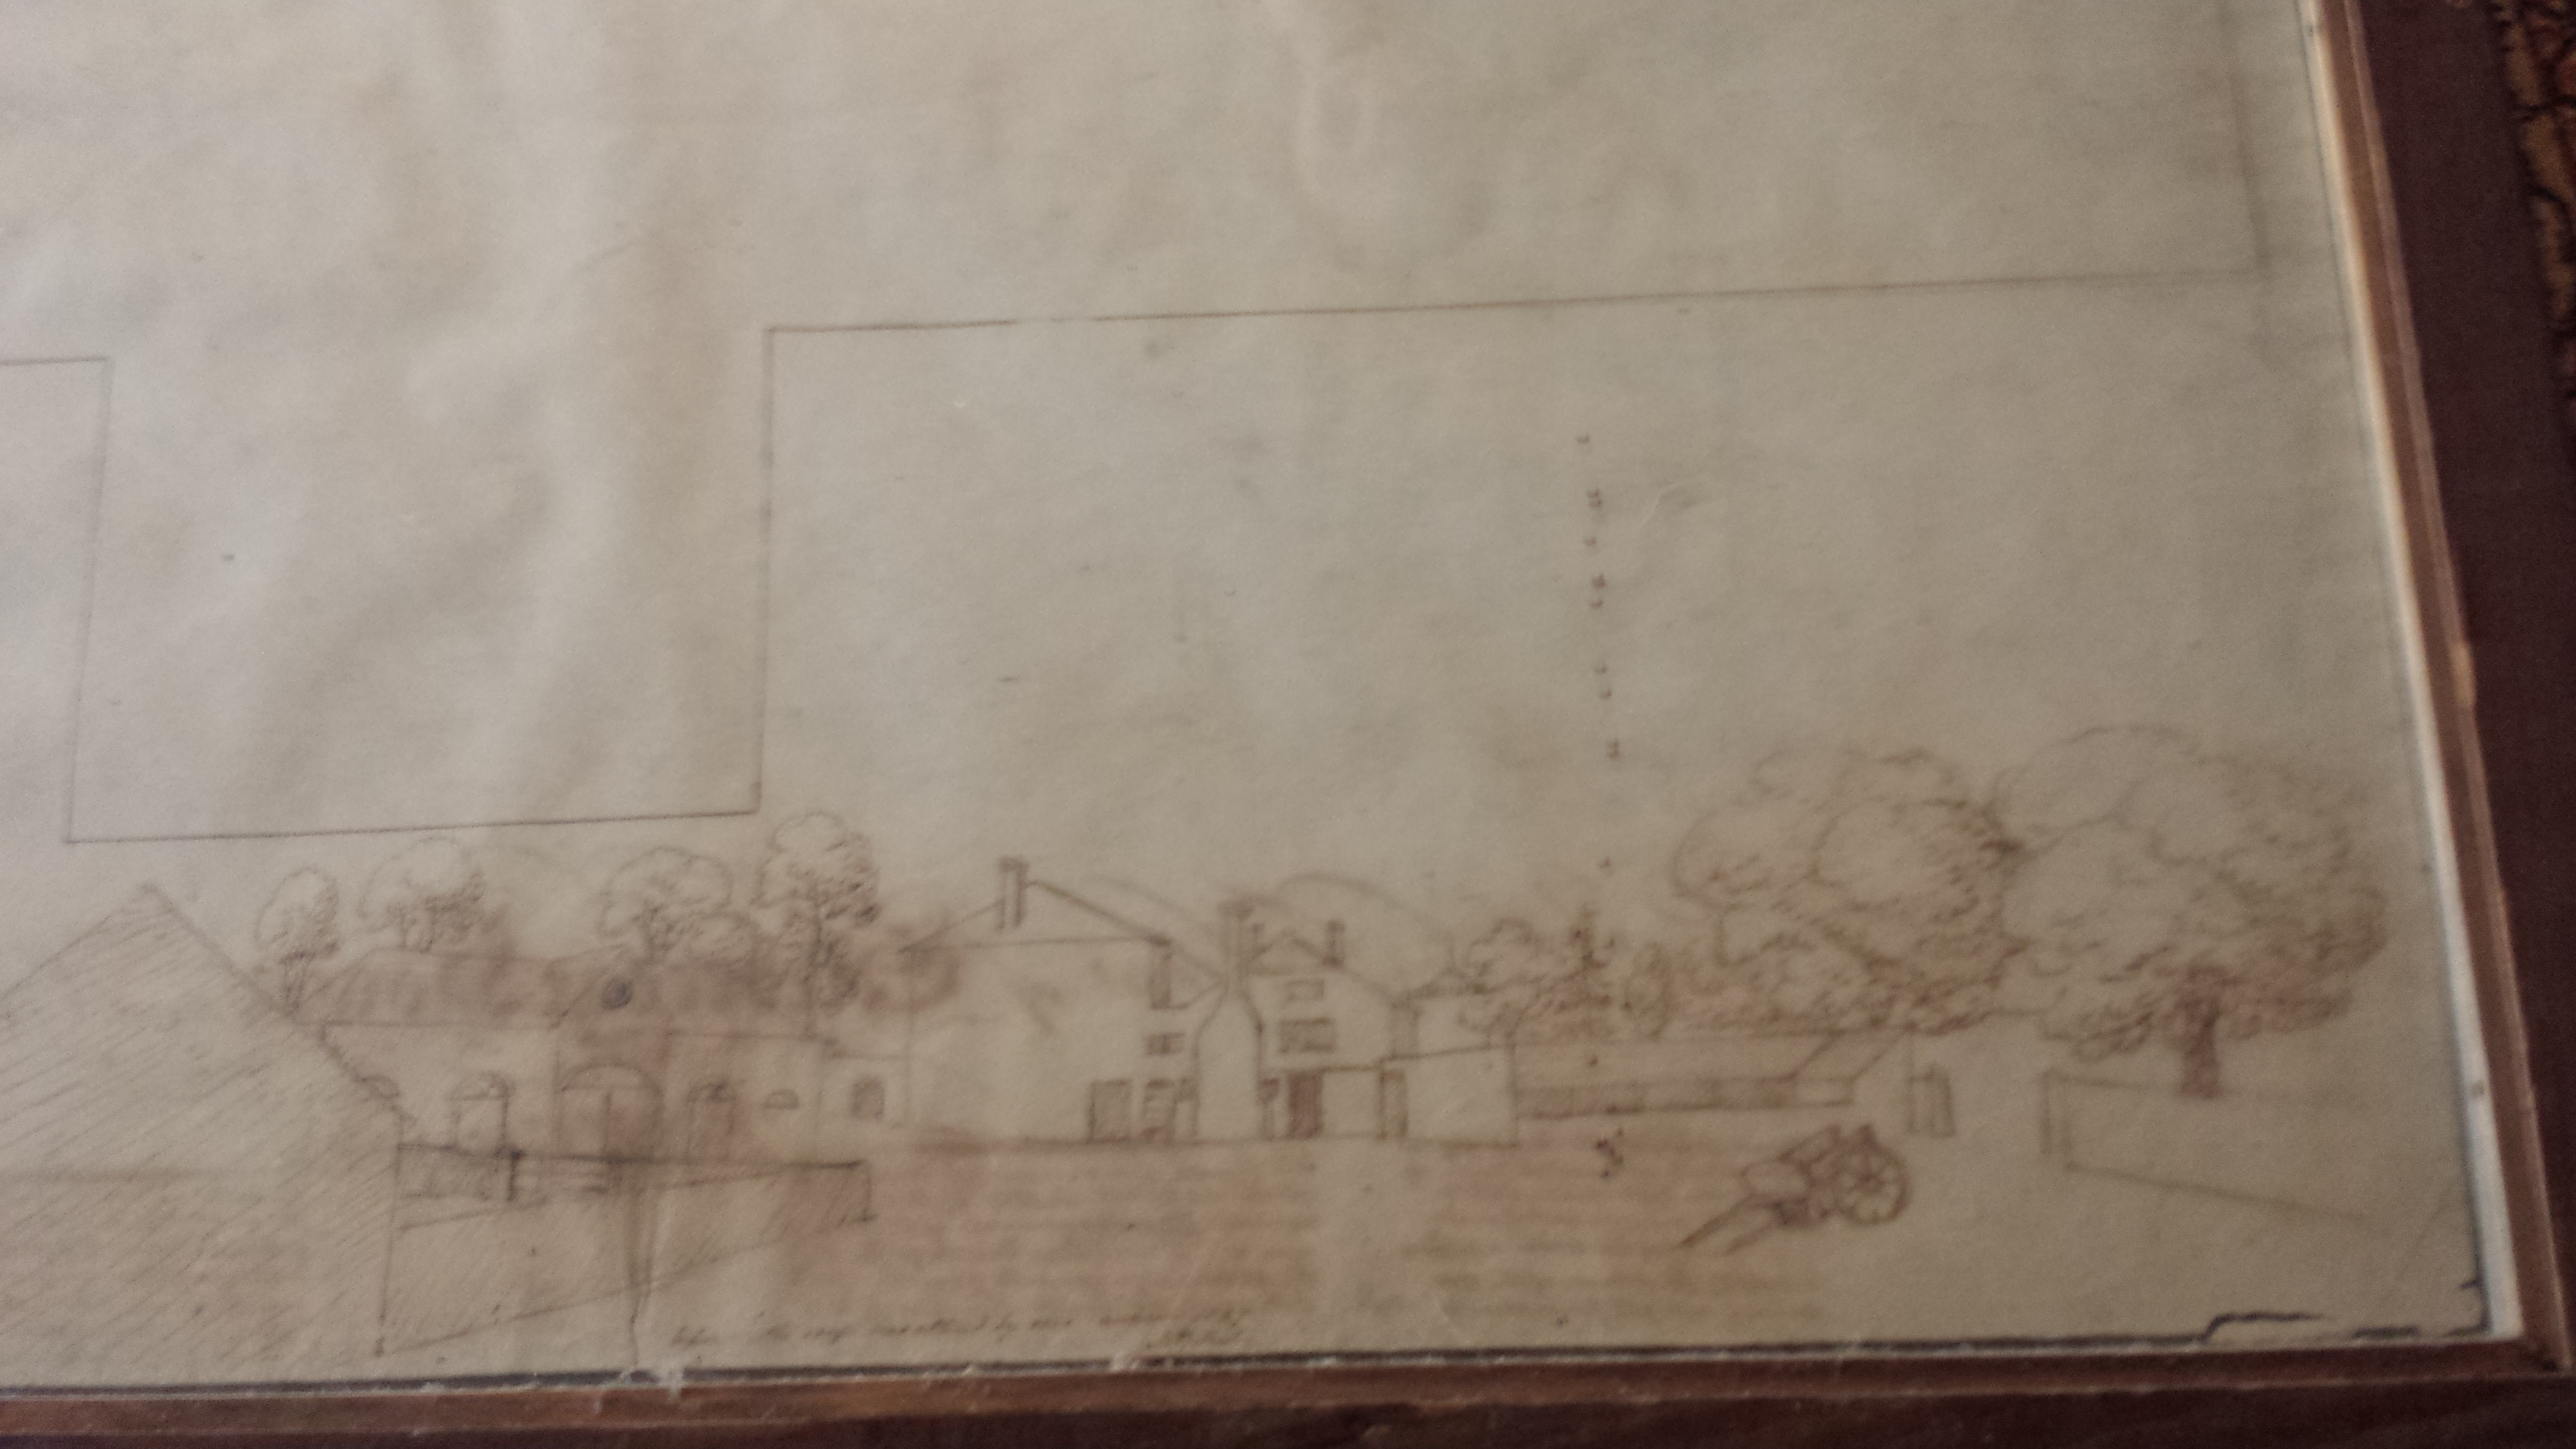 Sketch of house extension